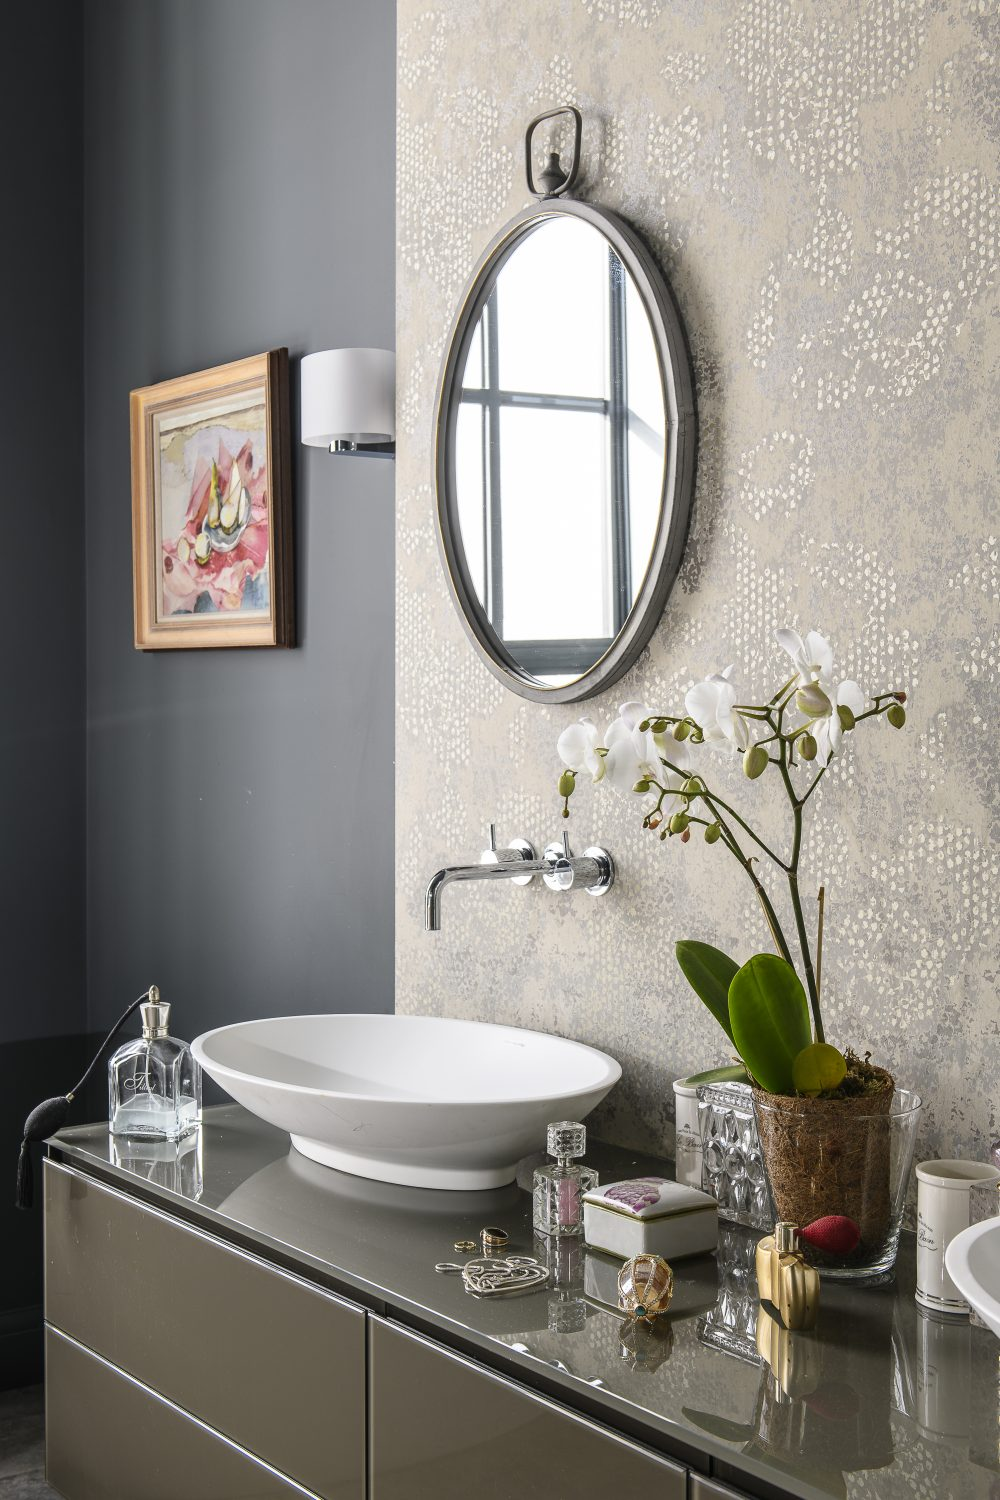 A luxurious, sculptural bath from C P Hart in Tunbridge Wells reclines next to the curtain-less window in the bathroom. The walls are painted in Scree by Little Greene, with wallpaper by Designers Guild